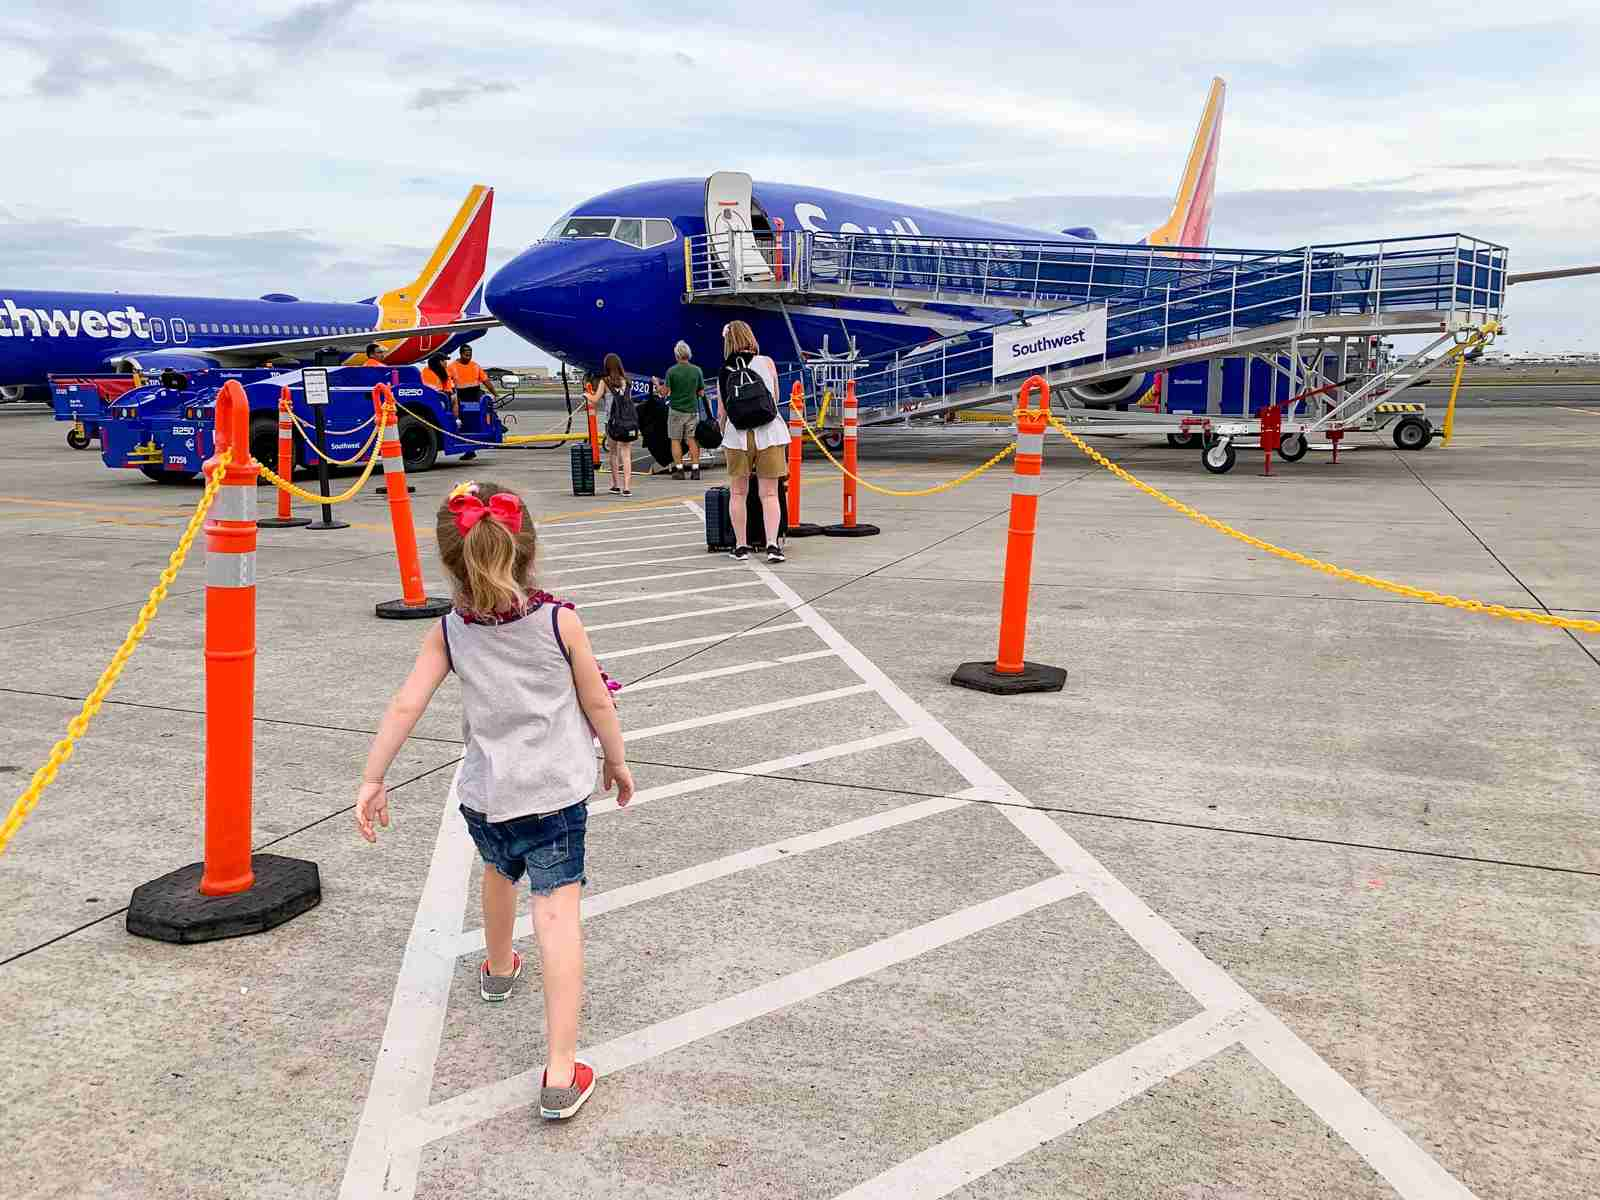 Southwest makes it easy to island-hop in Hawaii. (Photo by Summer Hull/The Points Guy)